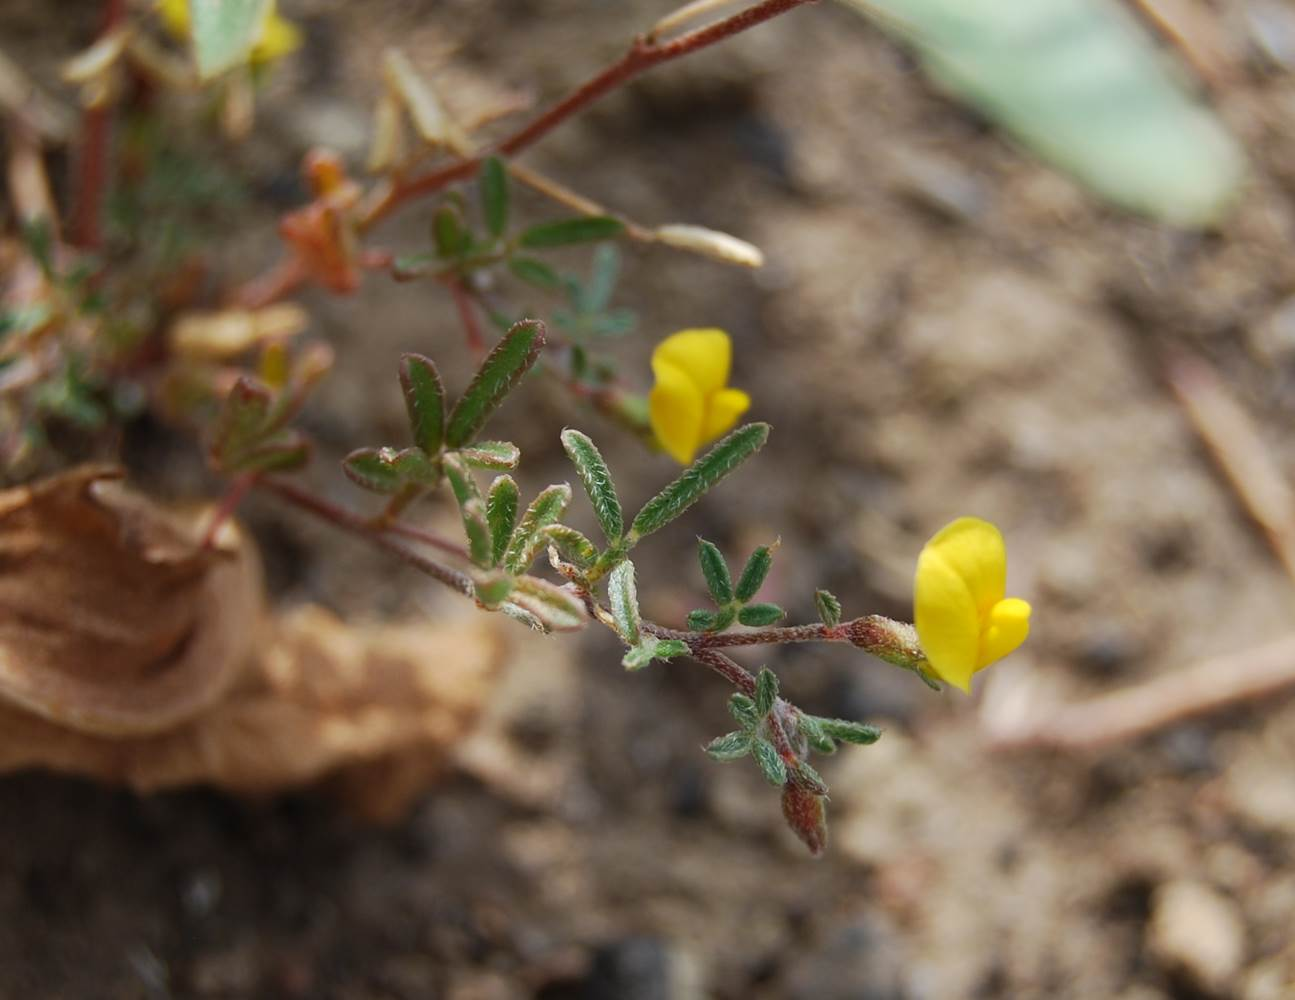 acmispon-strigosus-29may2014-1